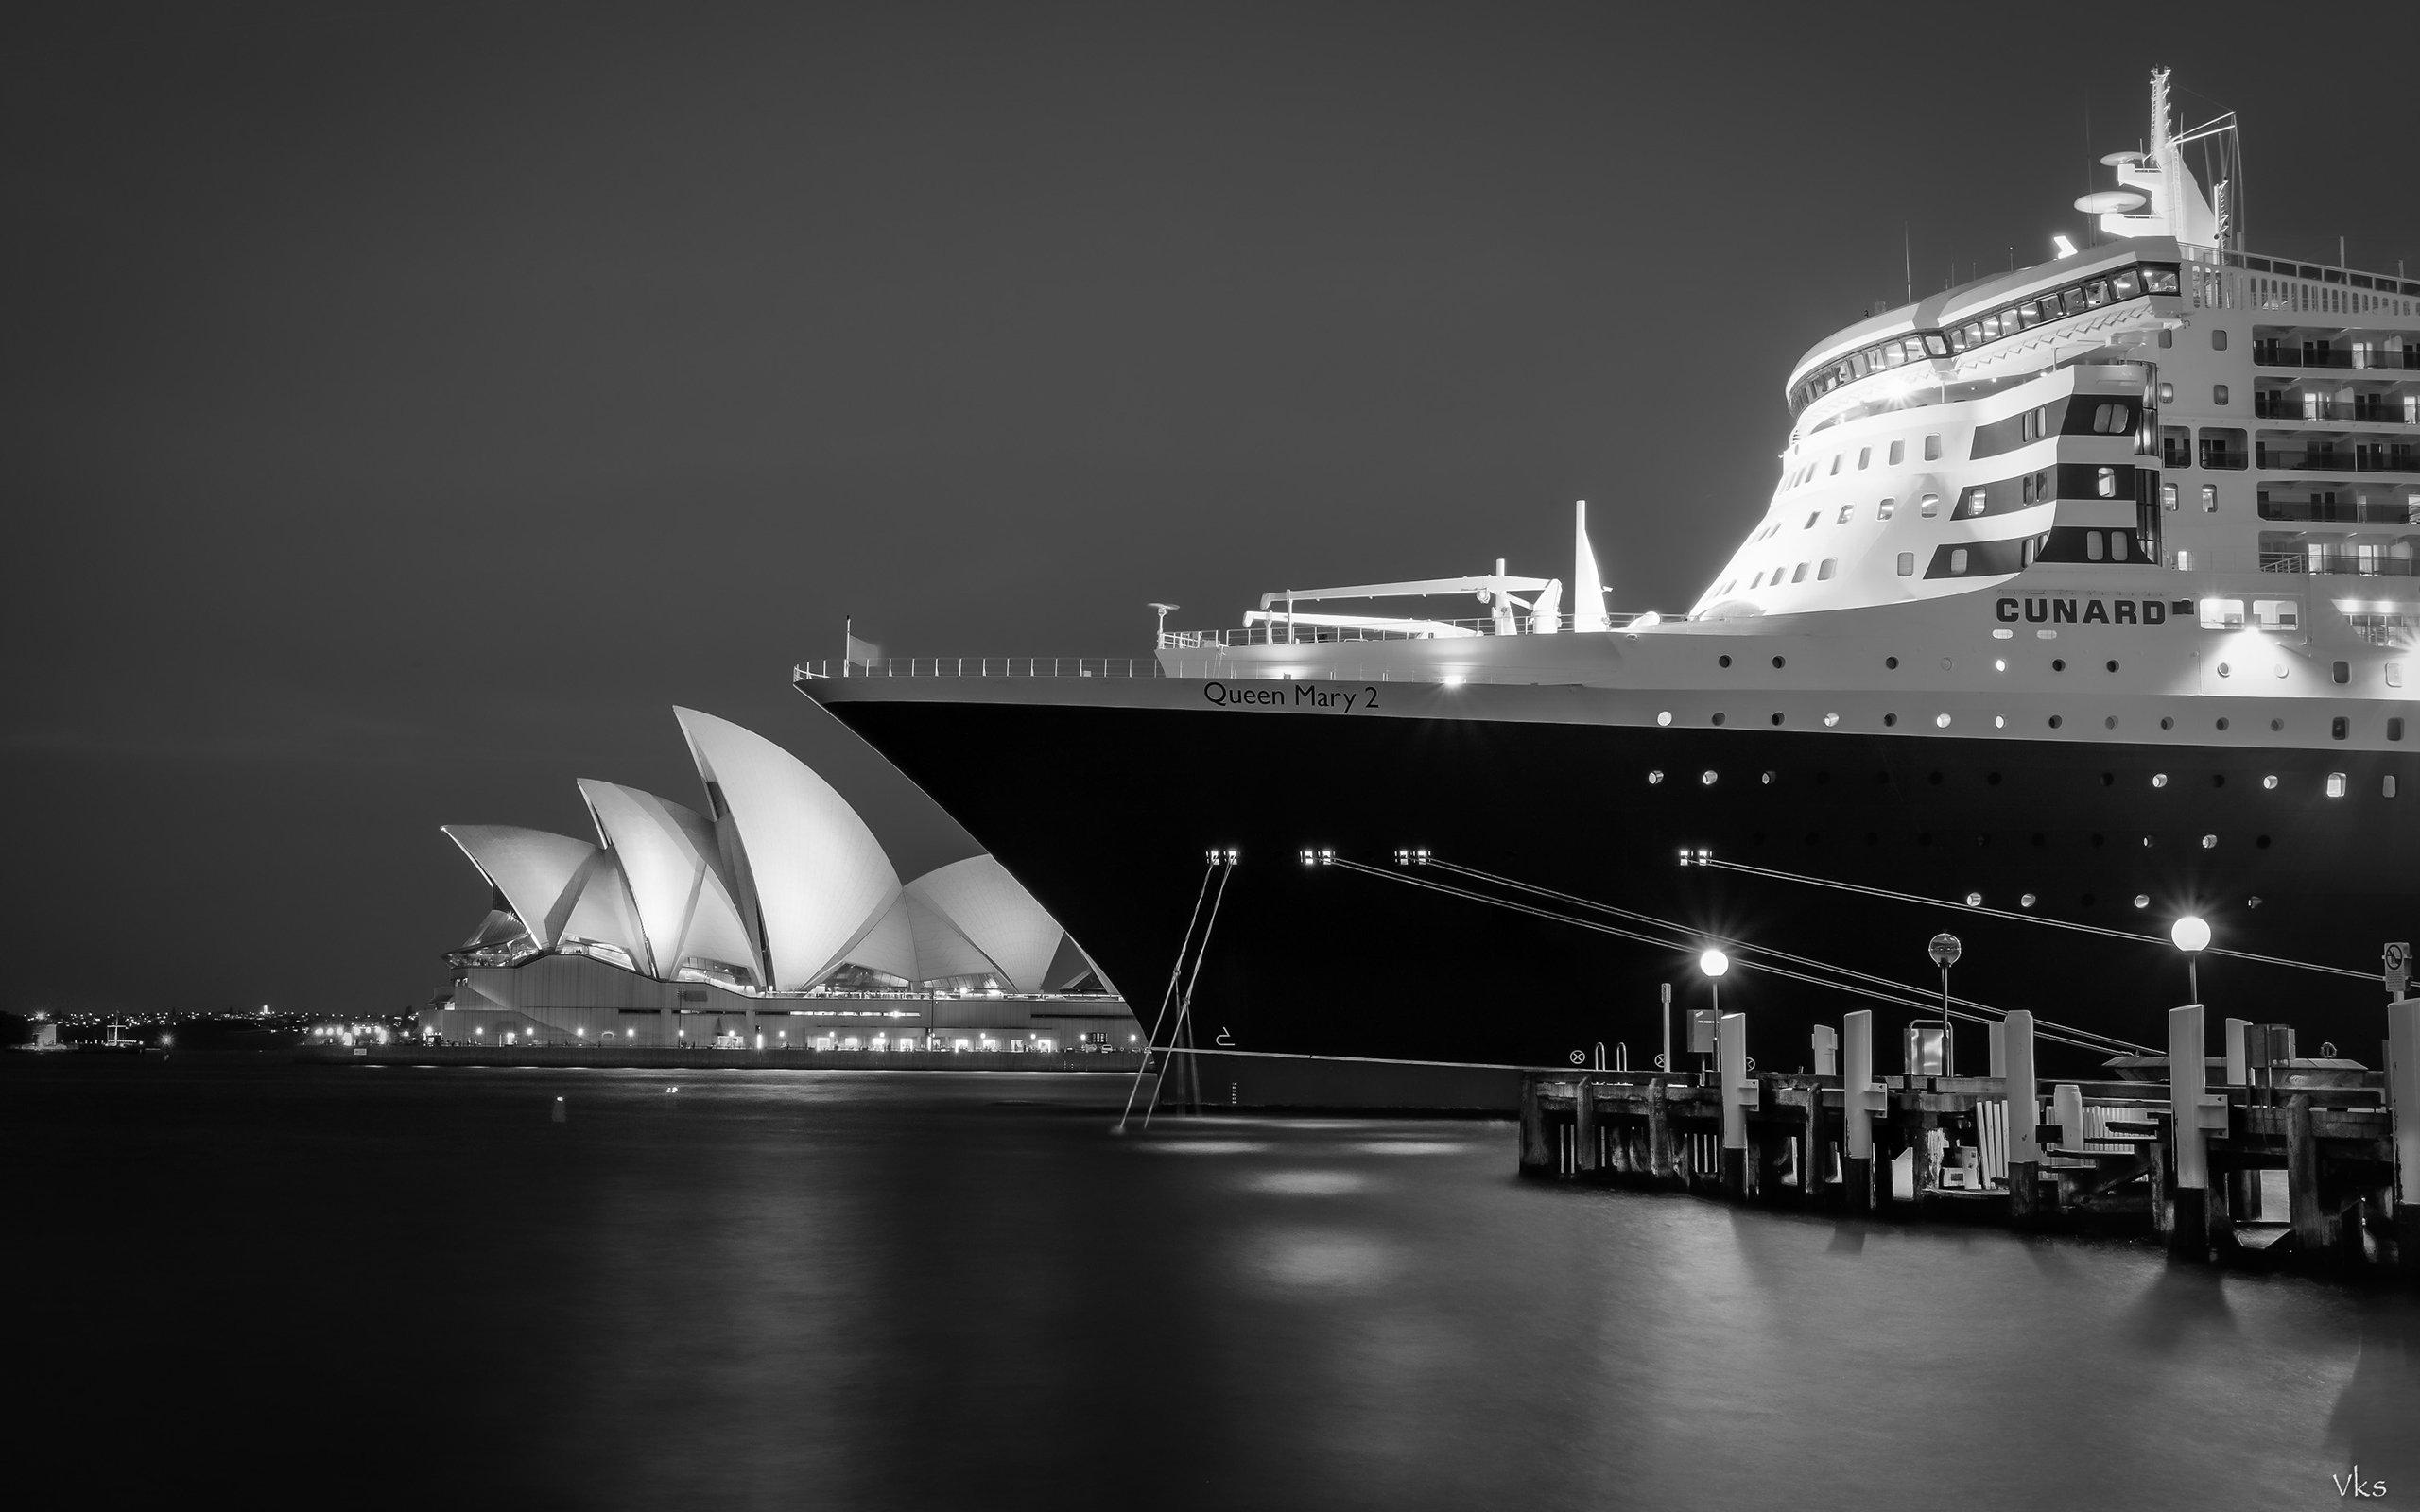 Cute Small Baby Wallpapers Hd Hd Sydney Opera House Night Bw Ship Cruise Background